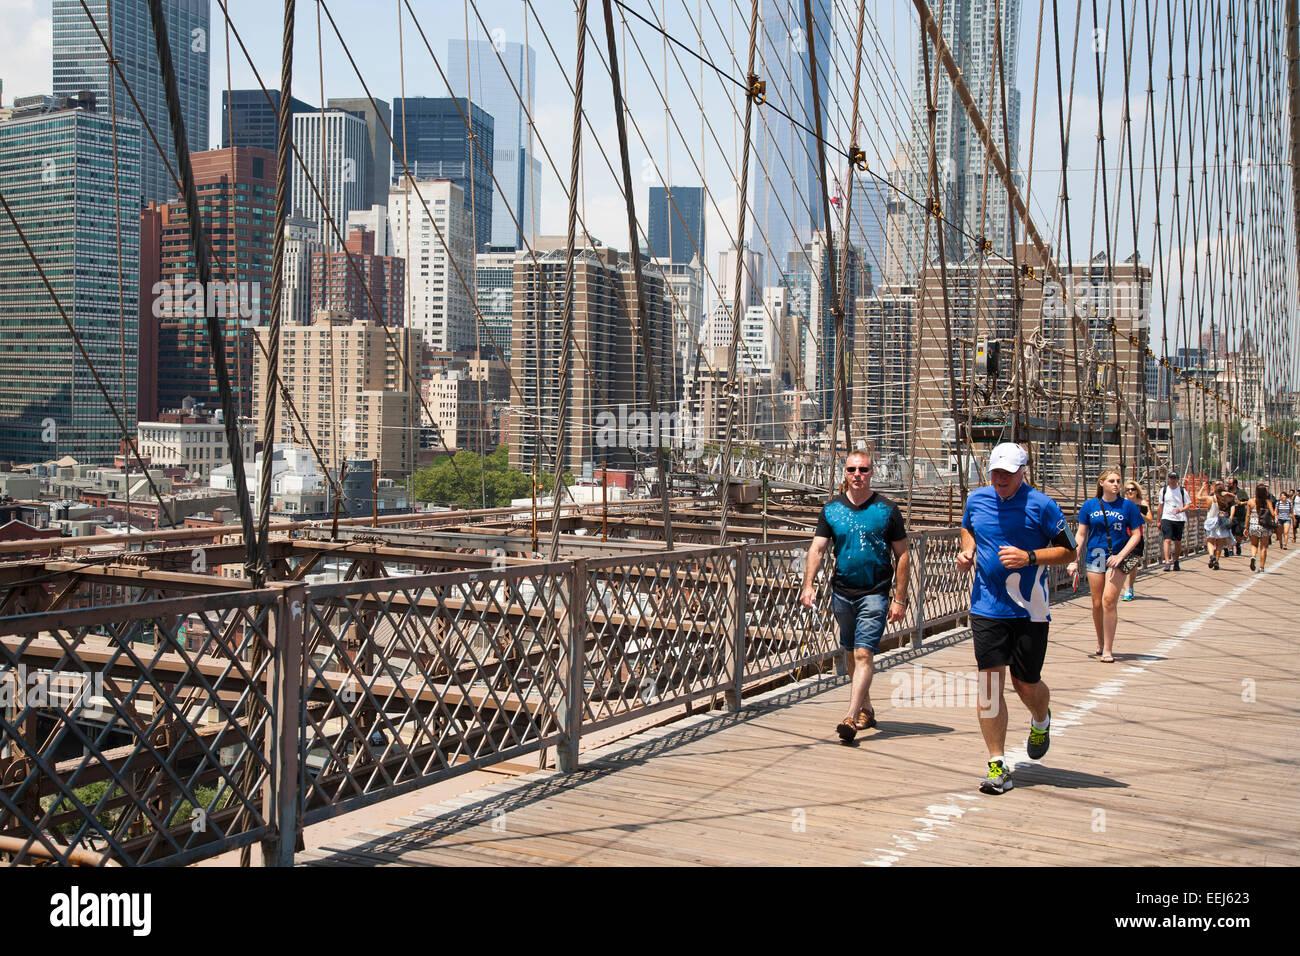 Pont de Brooklyn et la ville, East River, New York, USA, Amérique Latine Photo Stock